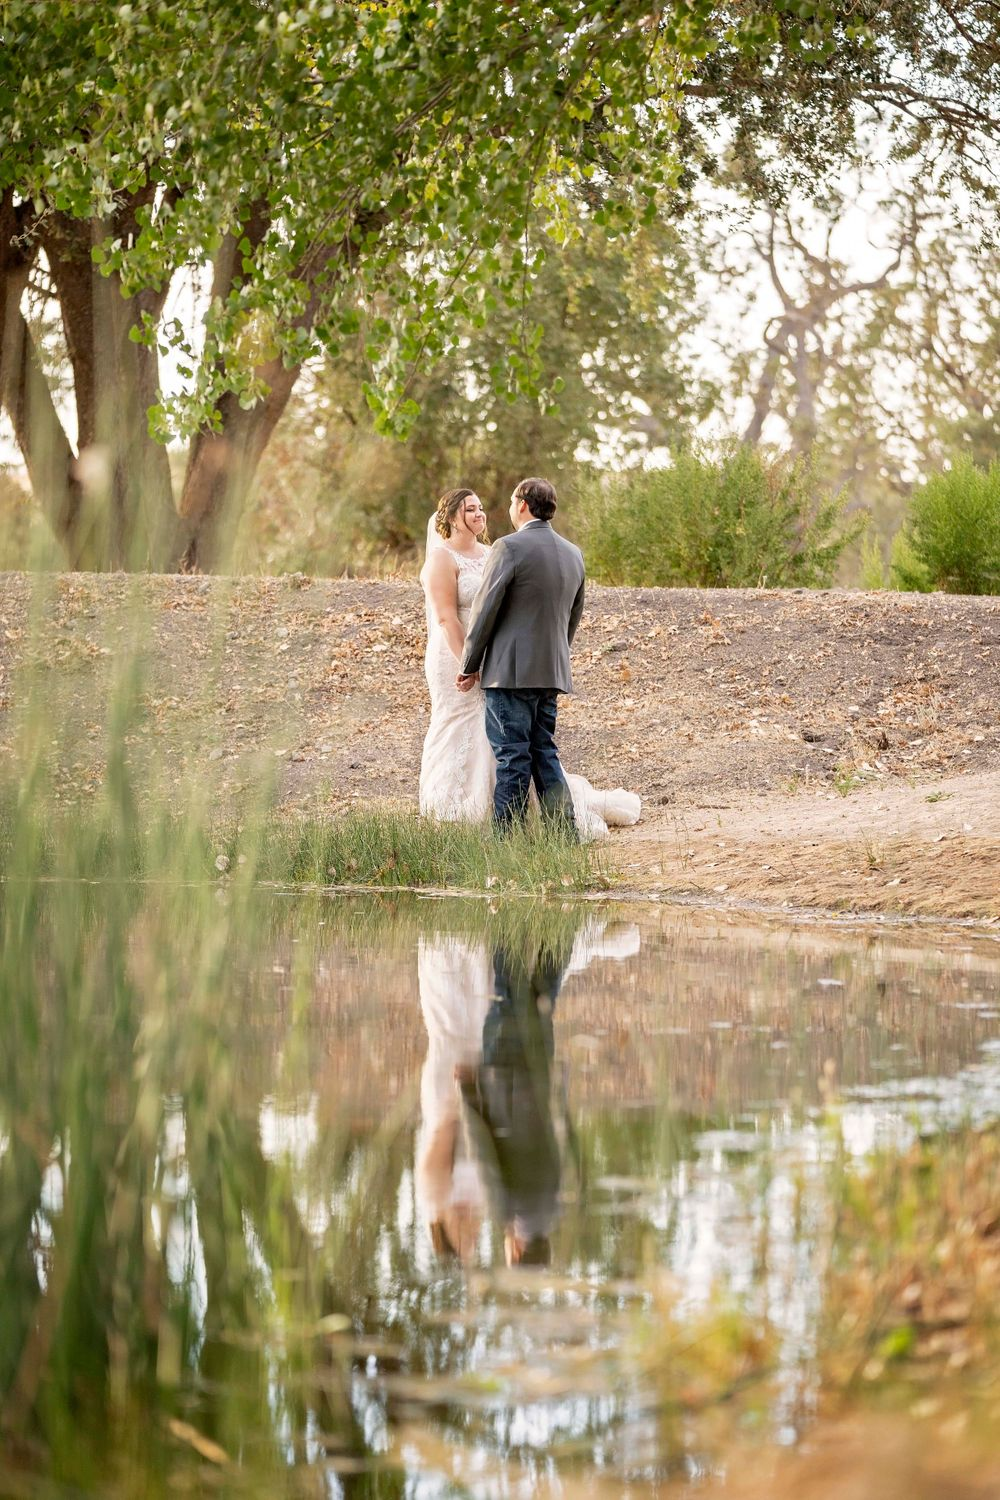 Bride and groom looking at each other with their reflection on the water at Fallen Oaks Estate